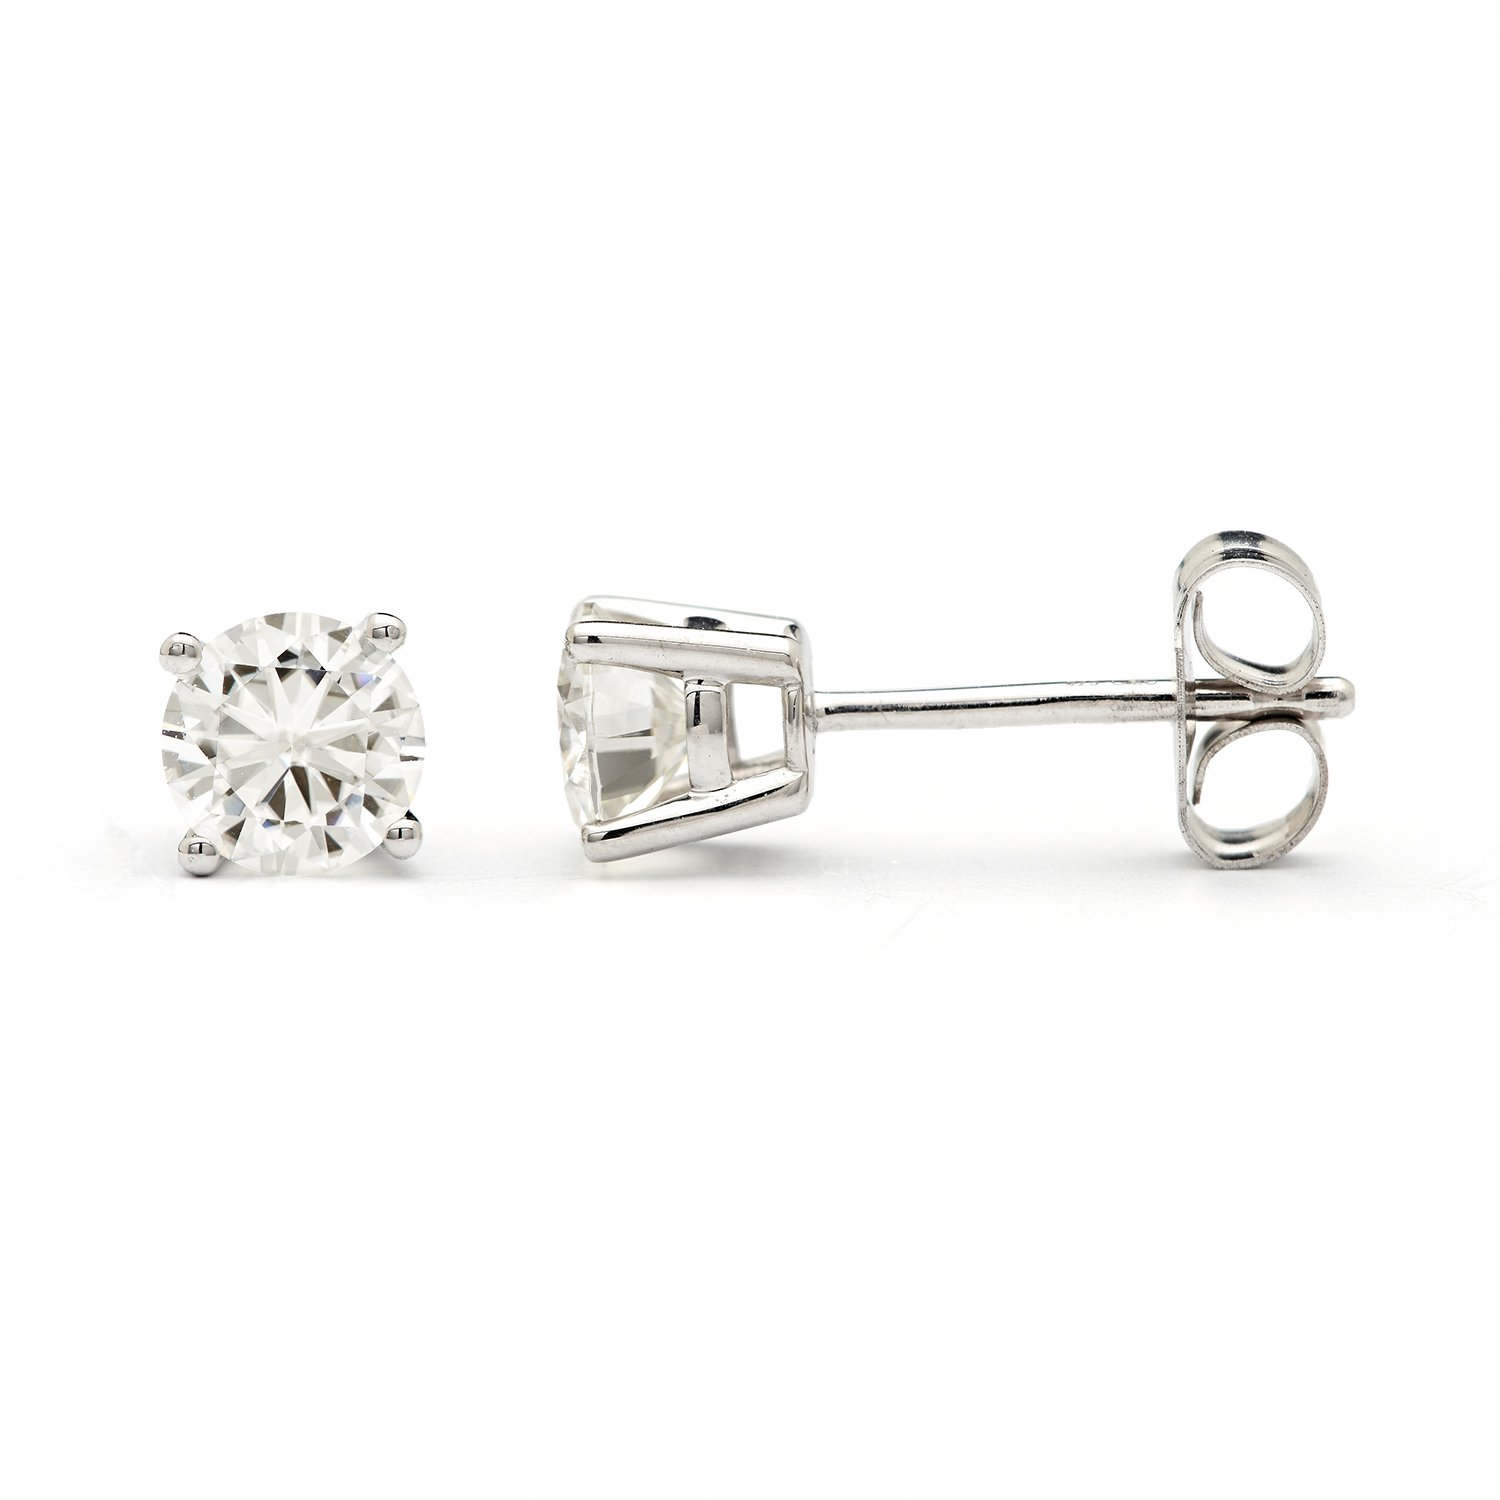 4.5mm Round Brilliant Cut Moissanite Sterling Silver Stud Earrings, 0.66cttw DEW By Charles & Colvard